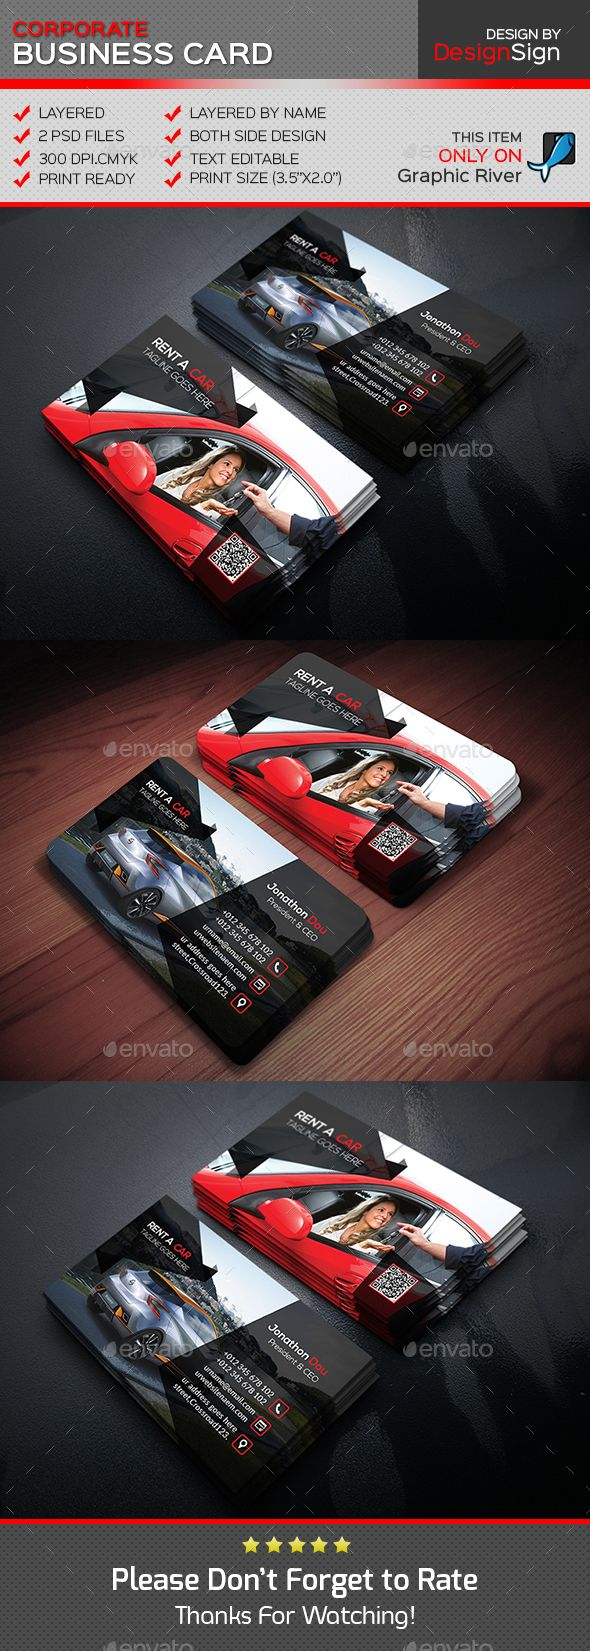 Rent a car business card pinterest business cards card rent a car business card template psd design download httpgraphicriveritemrent a car business card13576212refksioks reheart Gallery